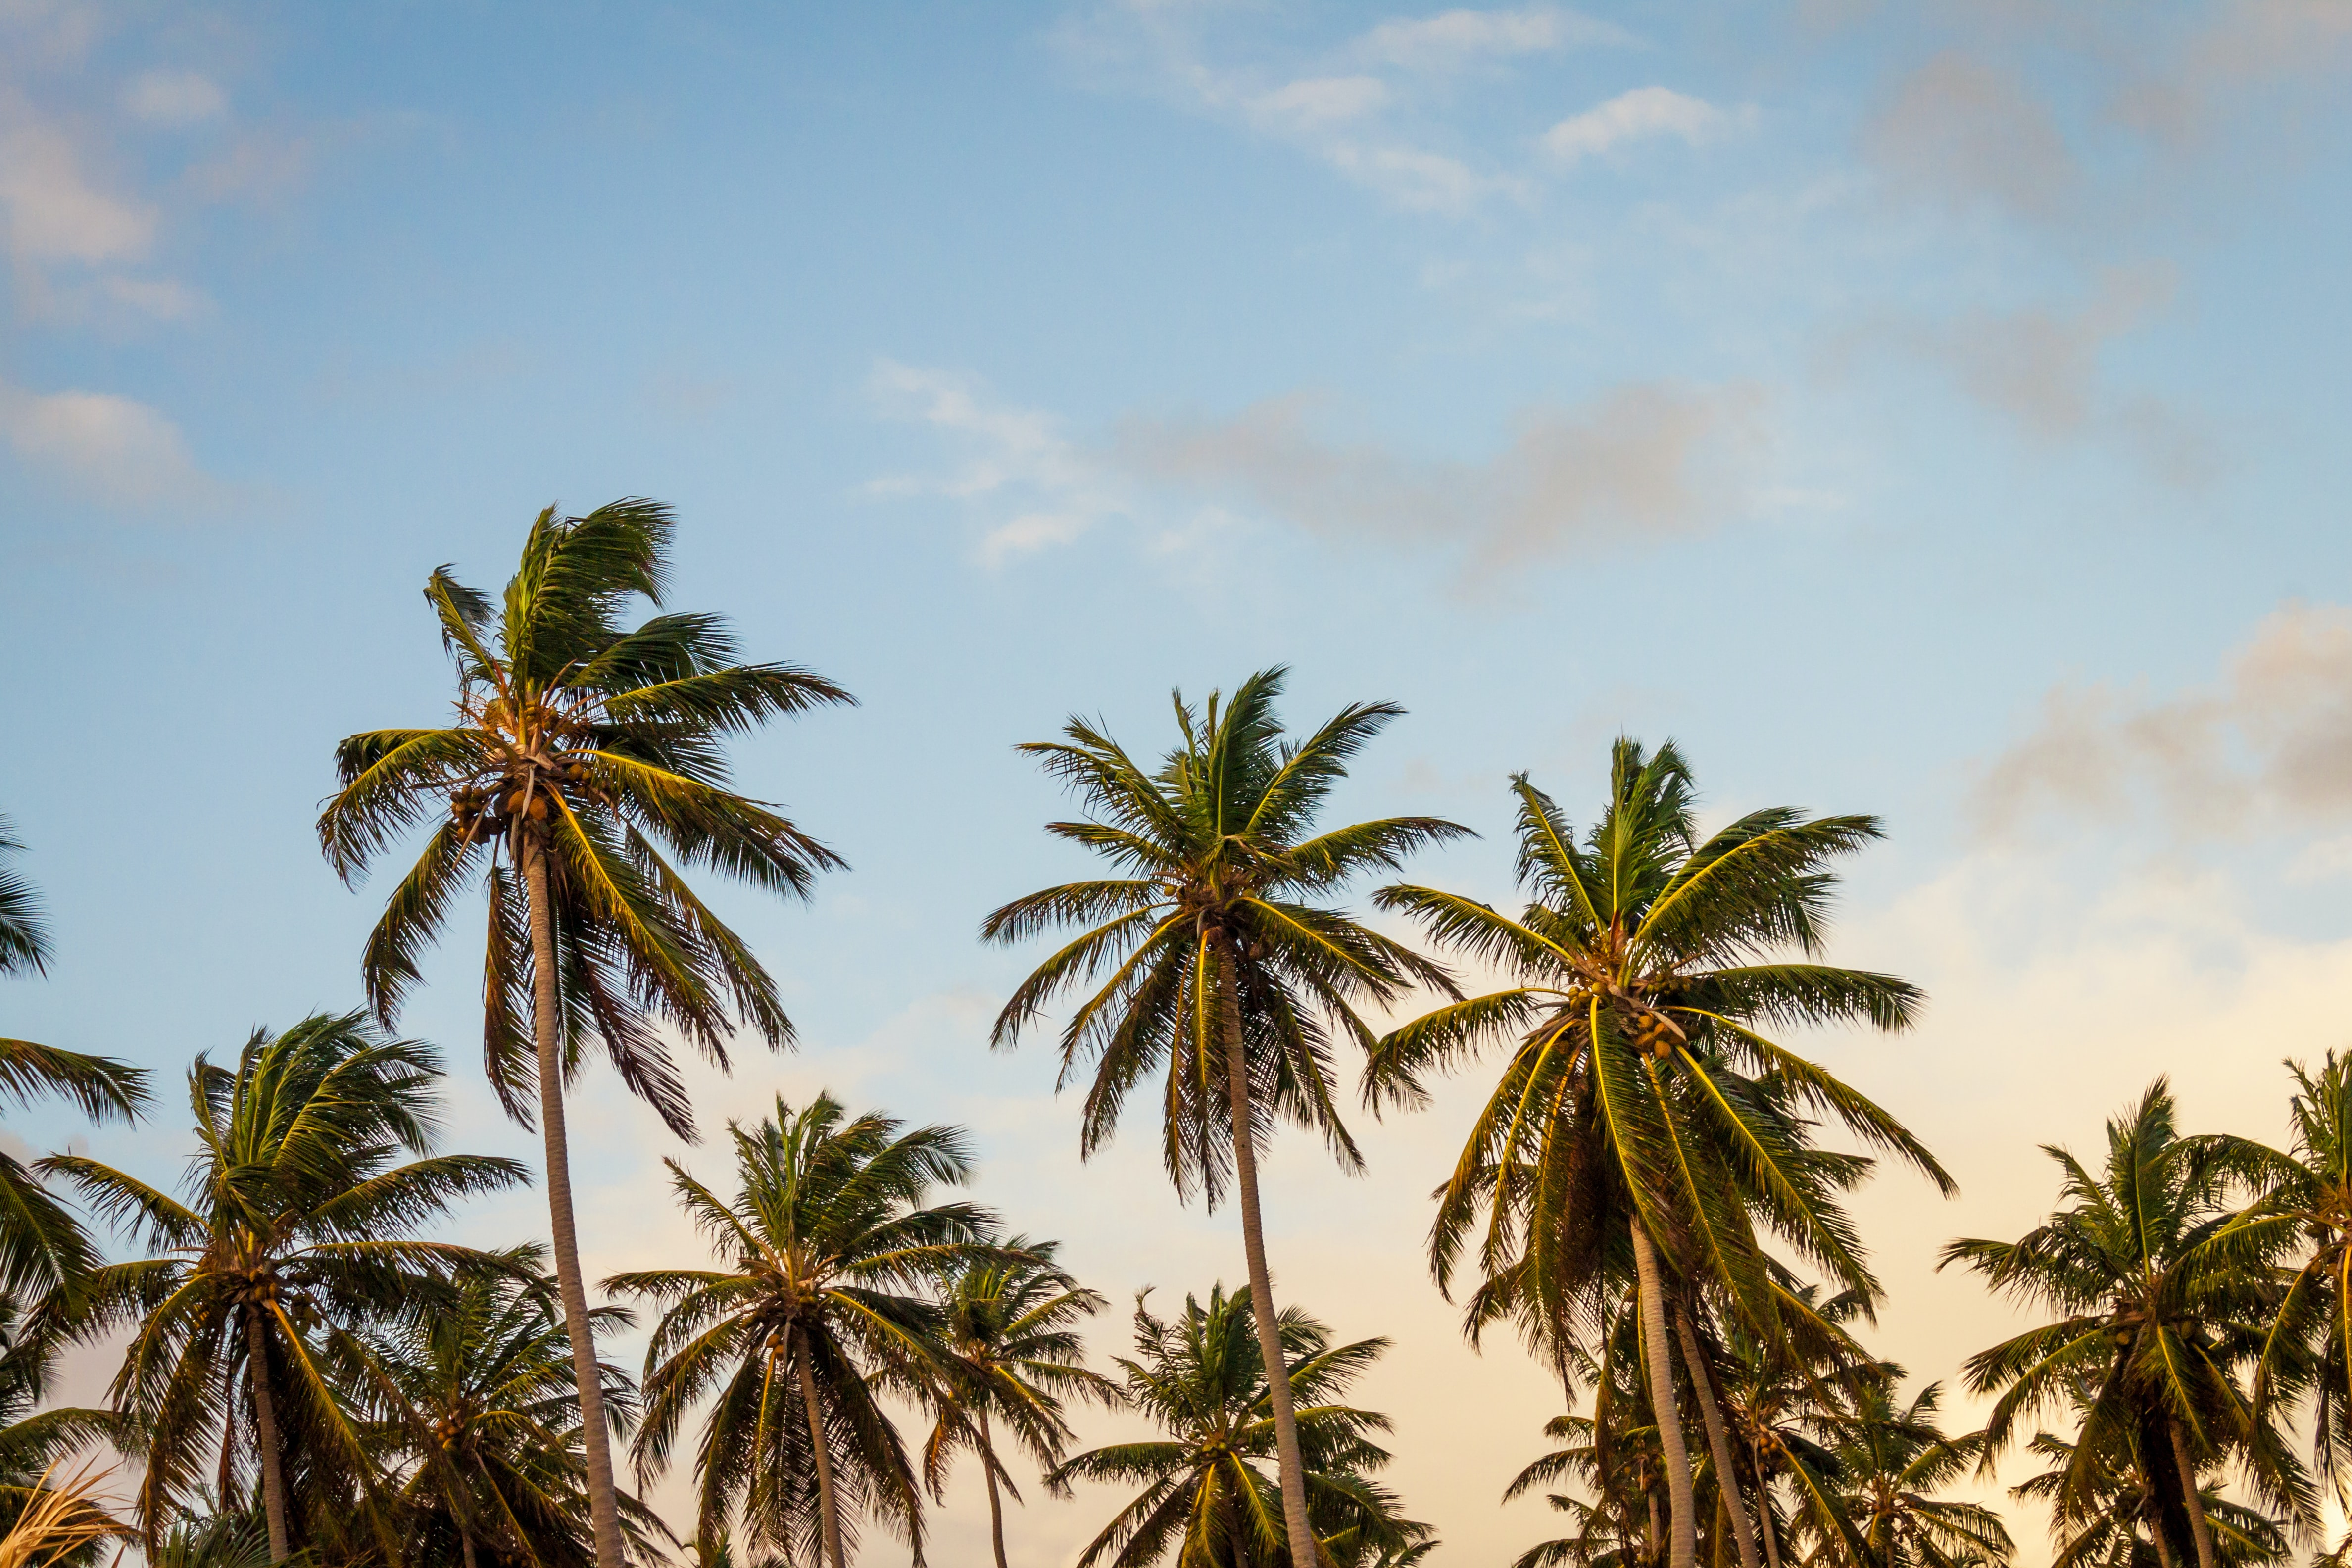 A bright windy palm tree paradise on an exciting summer day